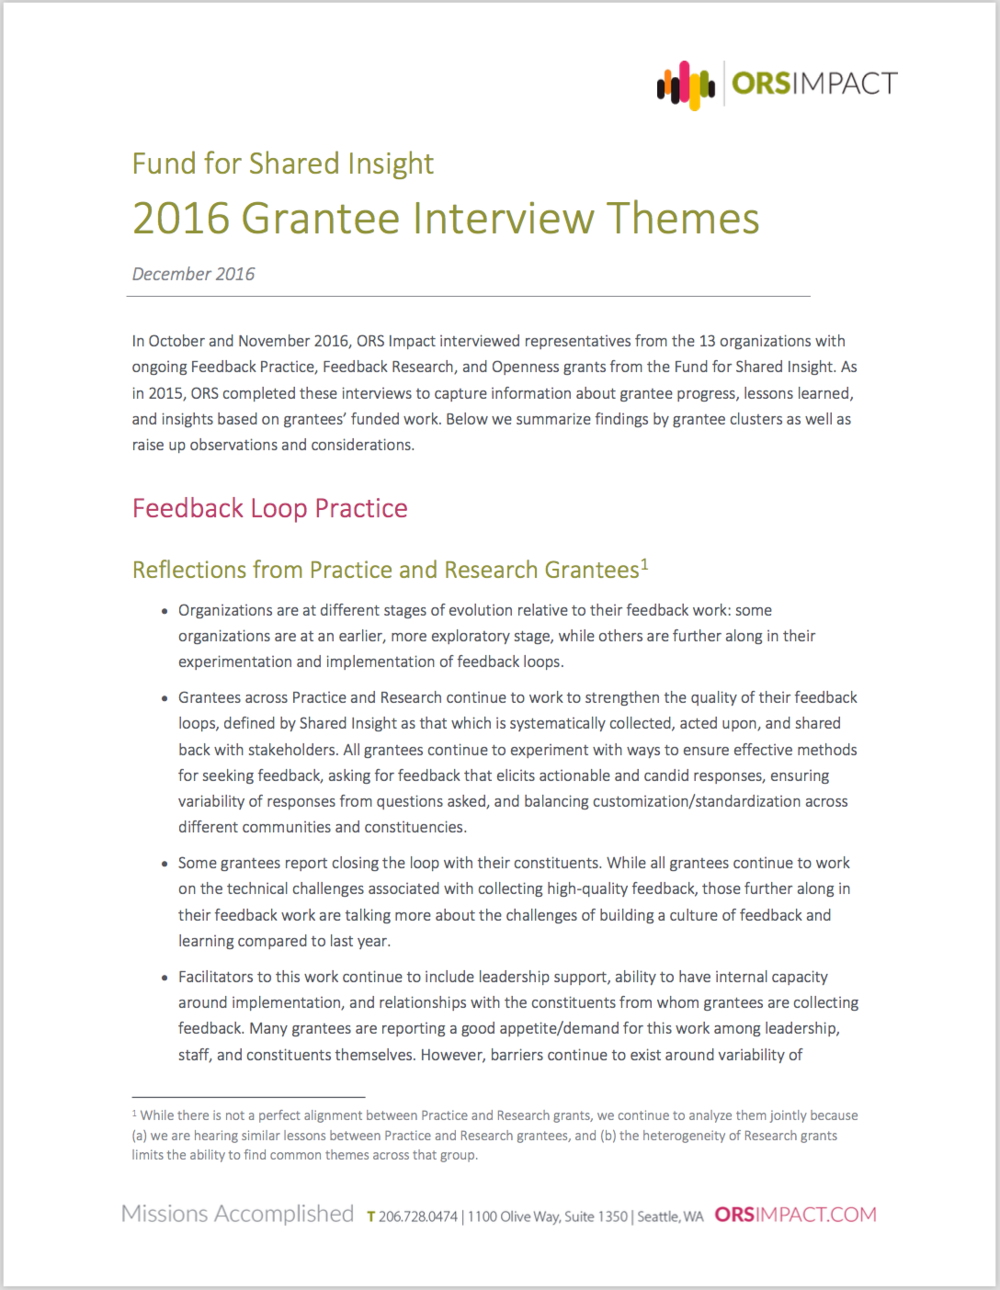 2016 OSR Grantee Interview Themes Fund for Shared Insight.png